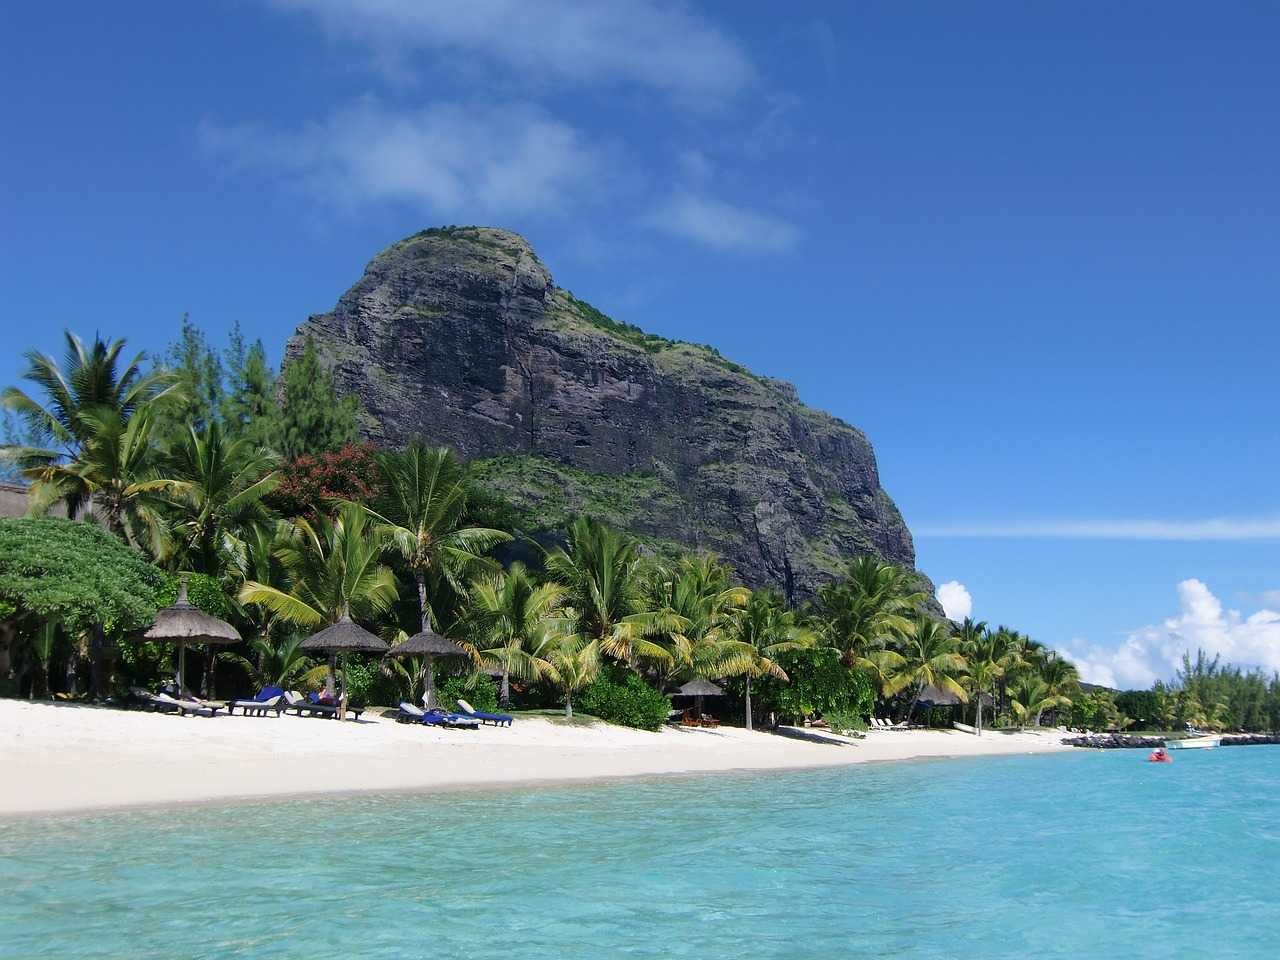 Le Morne beach hotel